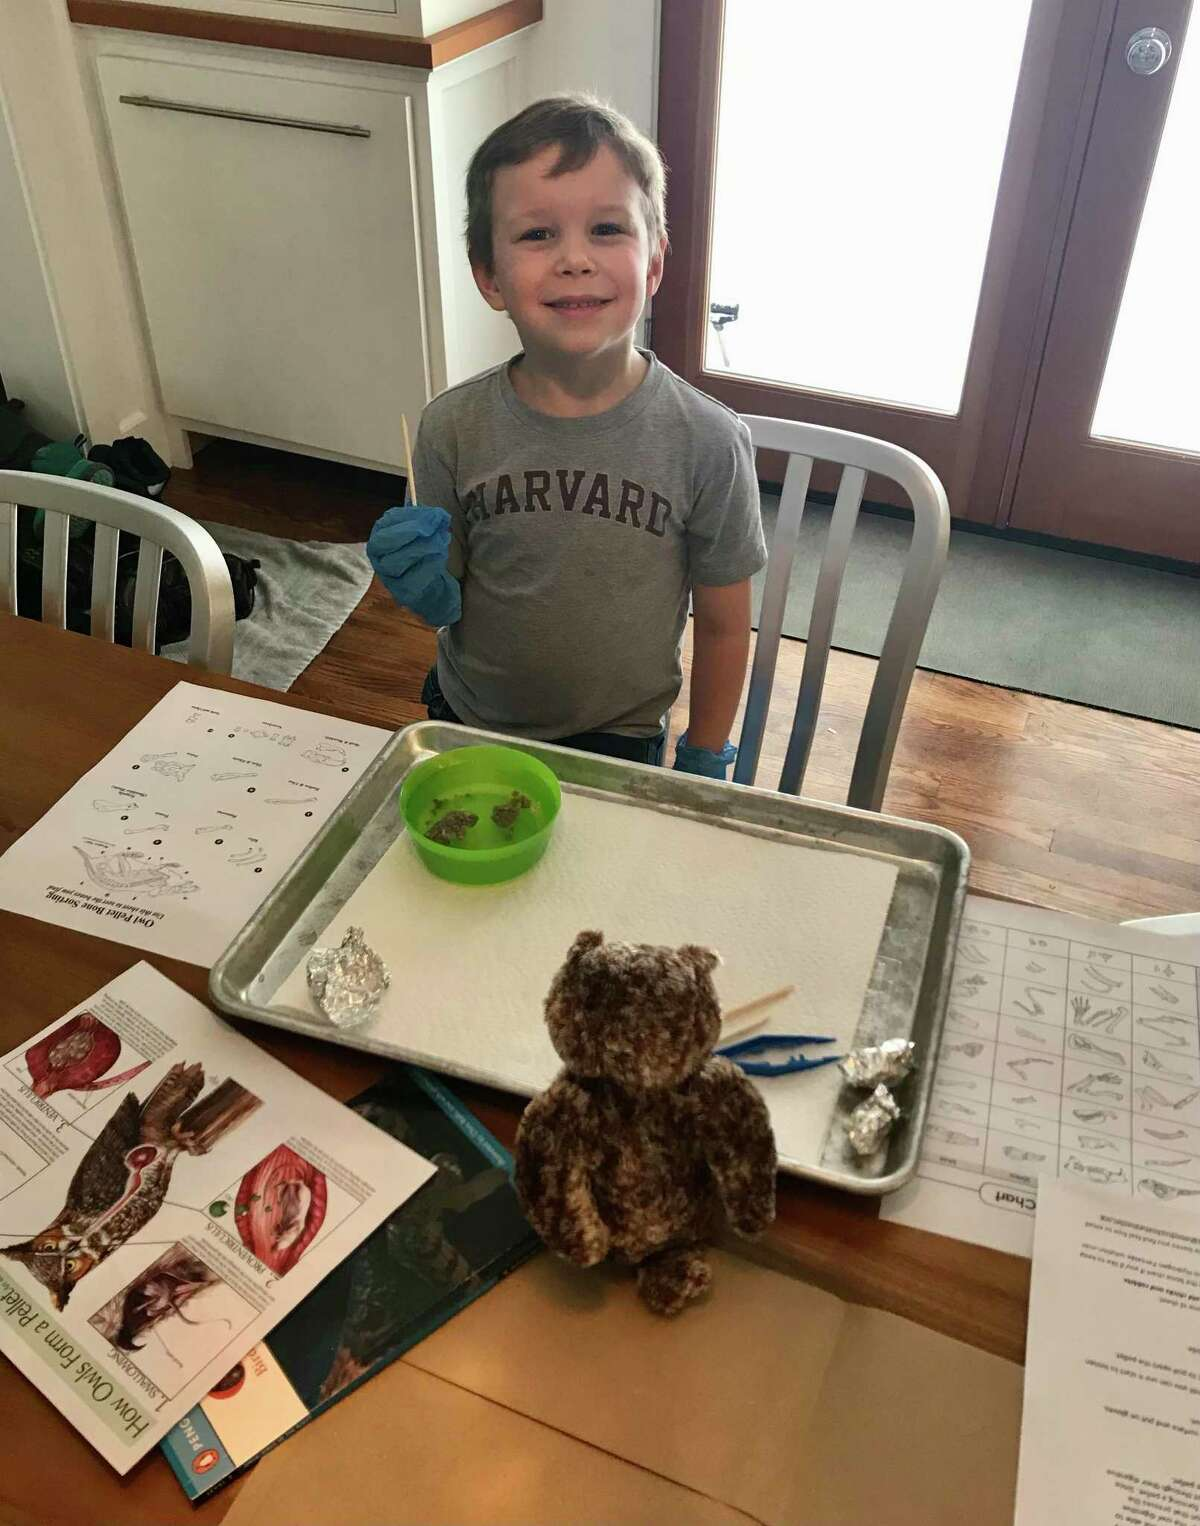 Sampson dissected the owl pellets to discover what bones of prey were inside. He then matched up what he found to the diagrams provided by Jennifer Bradshaw, early education coordinator.